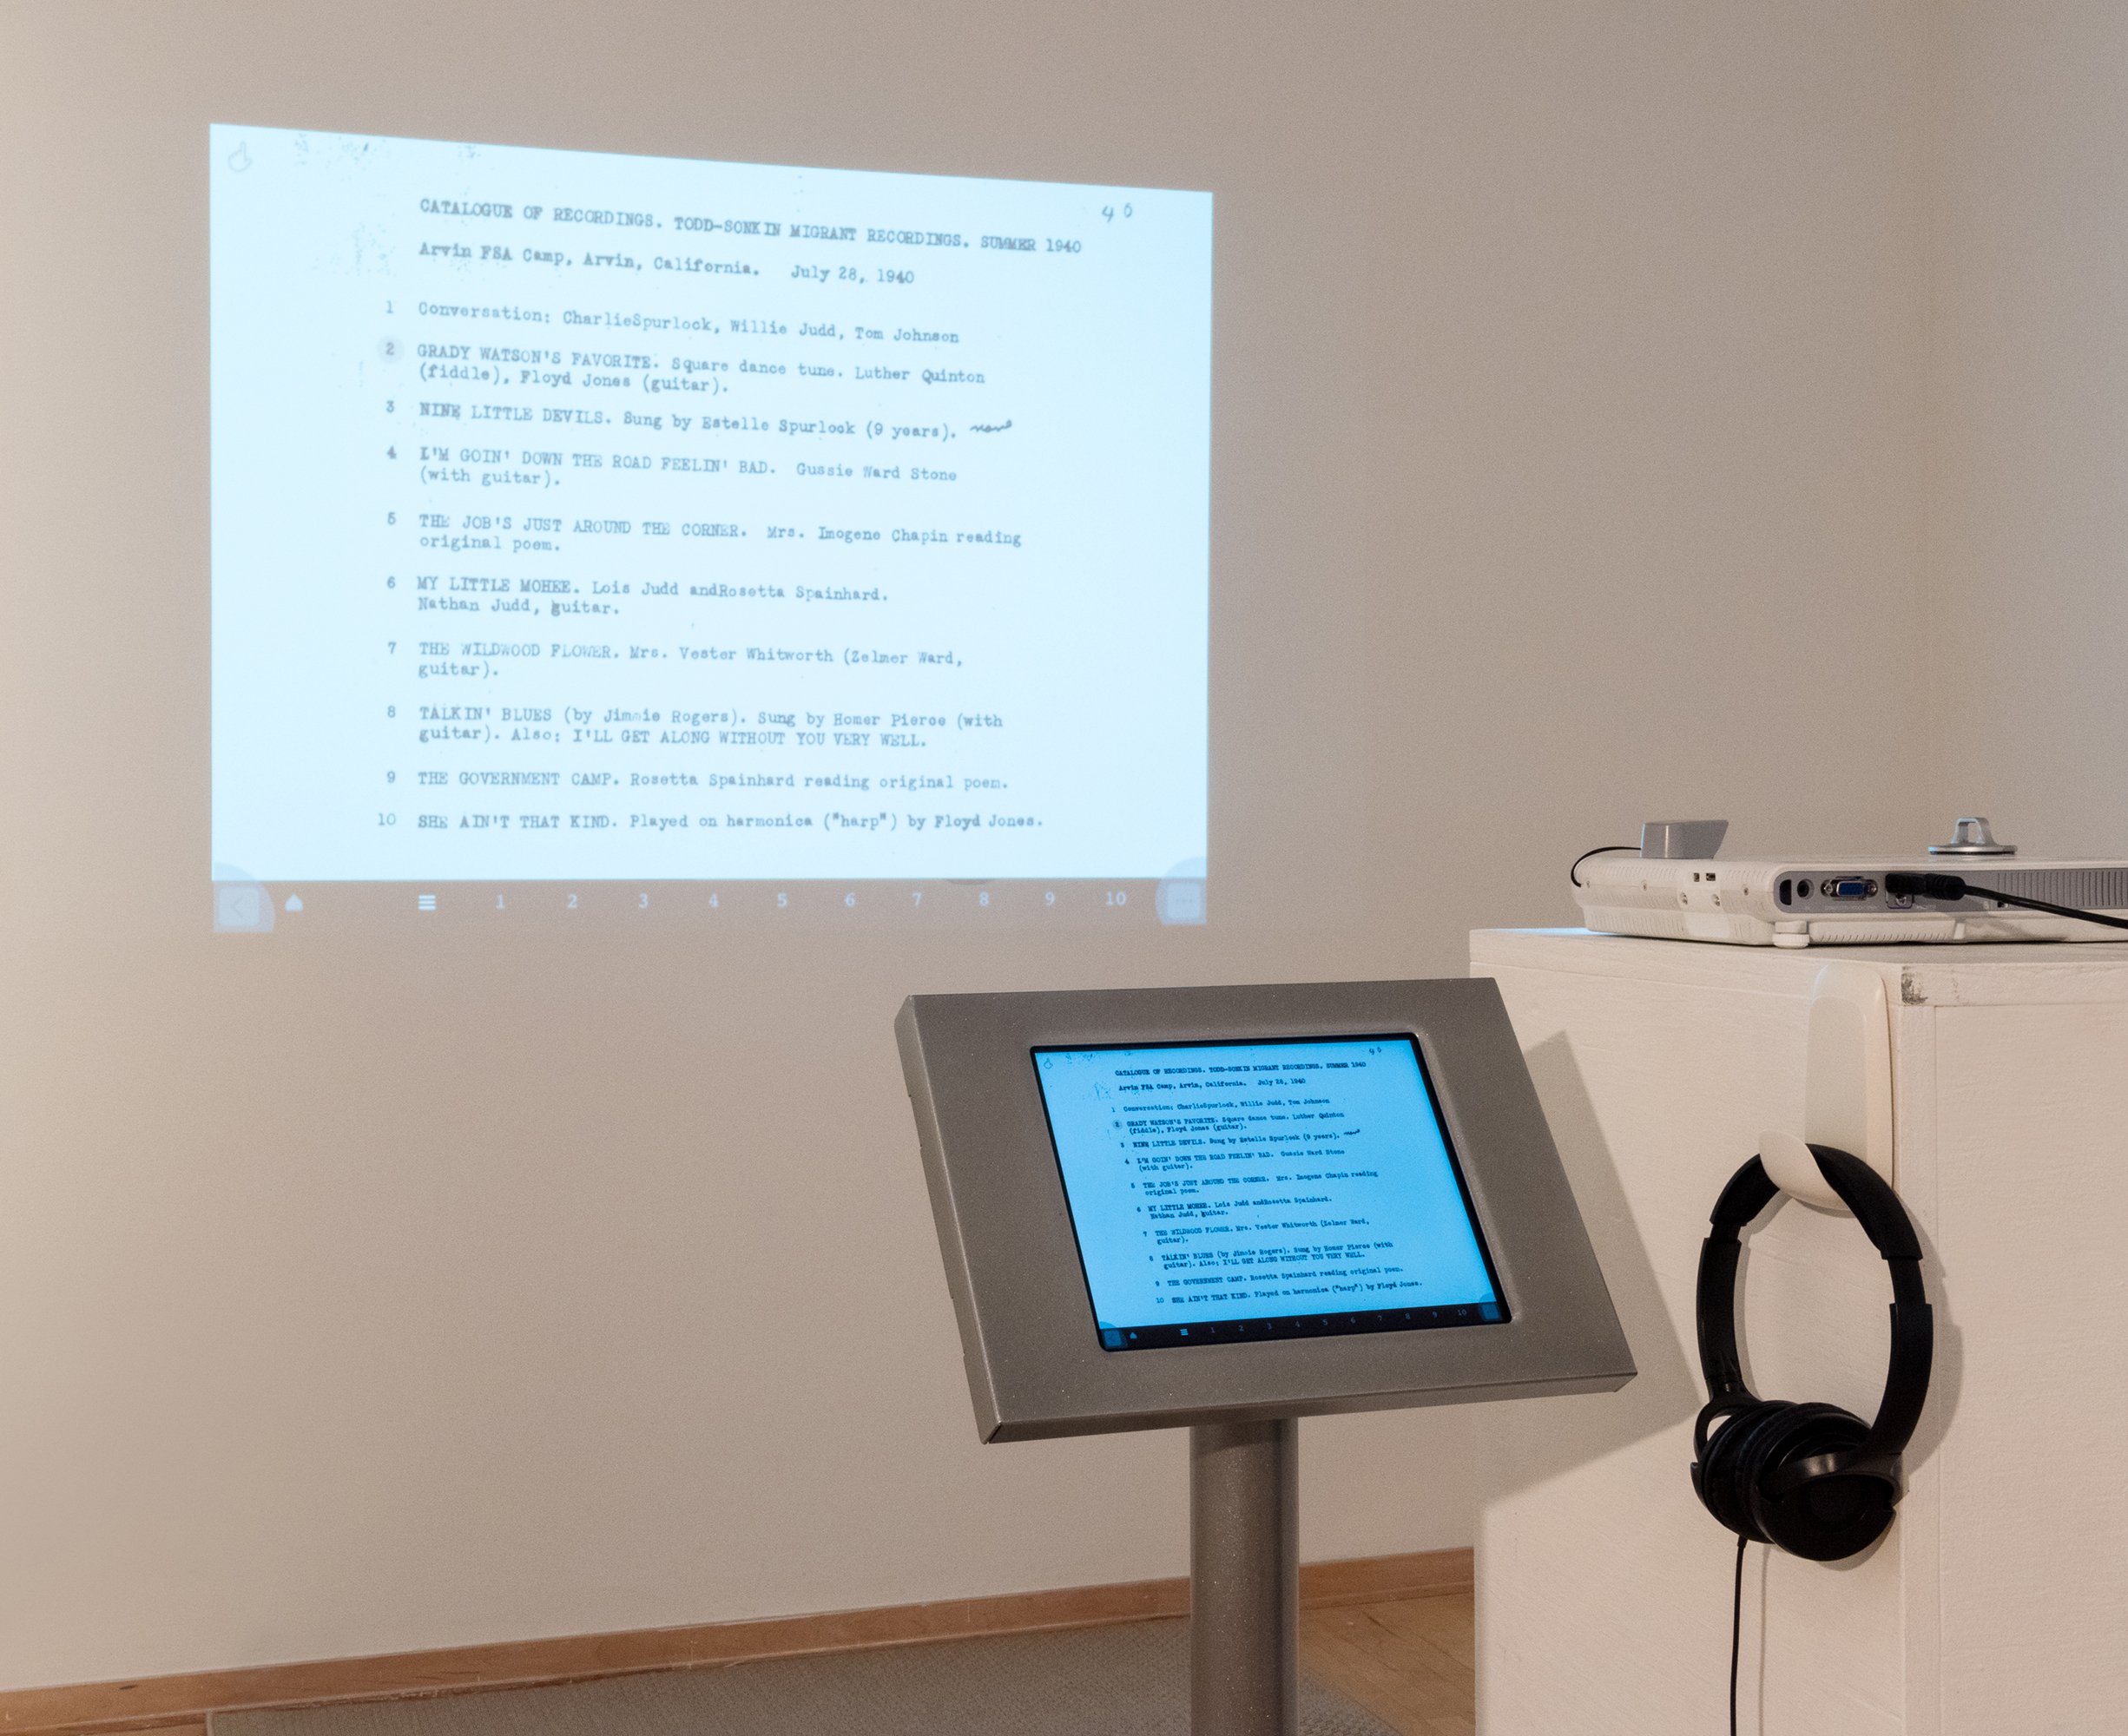 An ipad in a stand and headphones in front of a projected screen